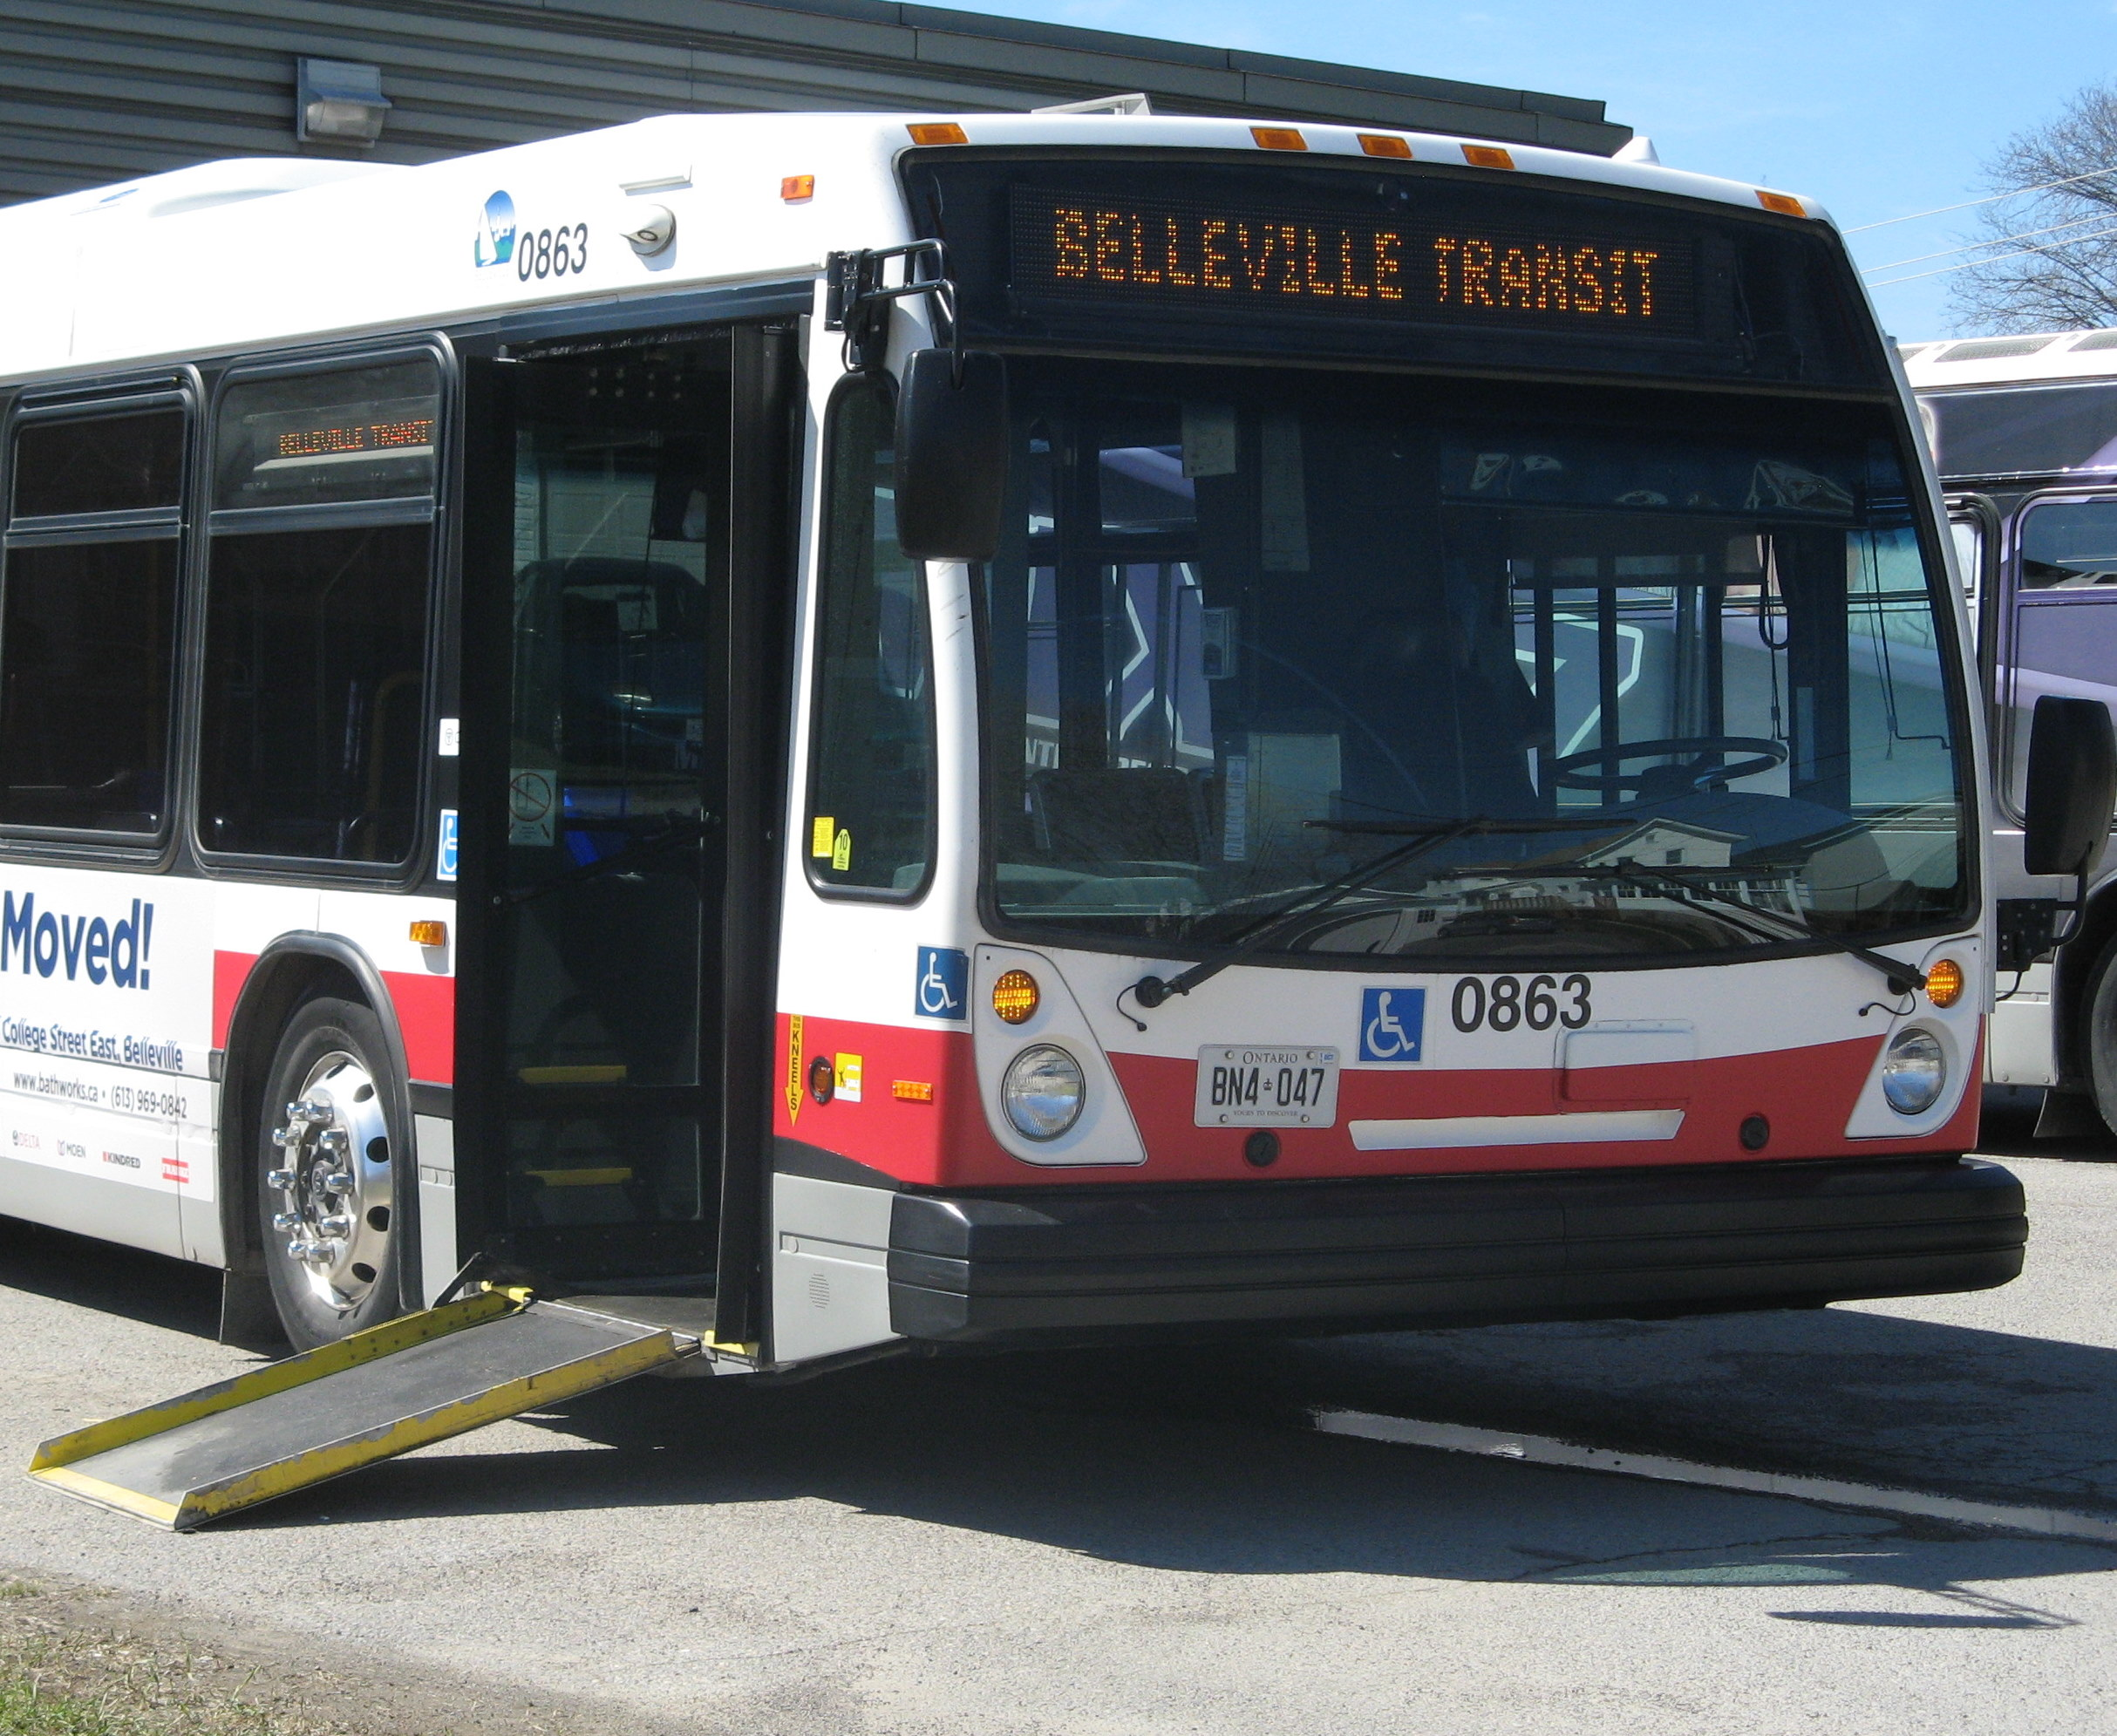 a conventional transit bus from Belleville Transit lowers the front entrance and deploys the ramp for easier boarding